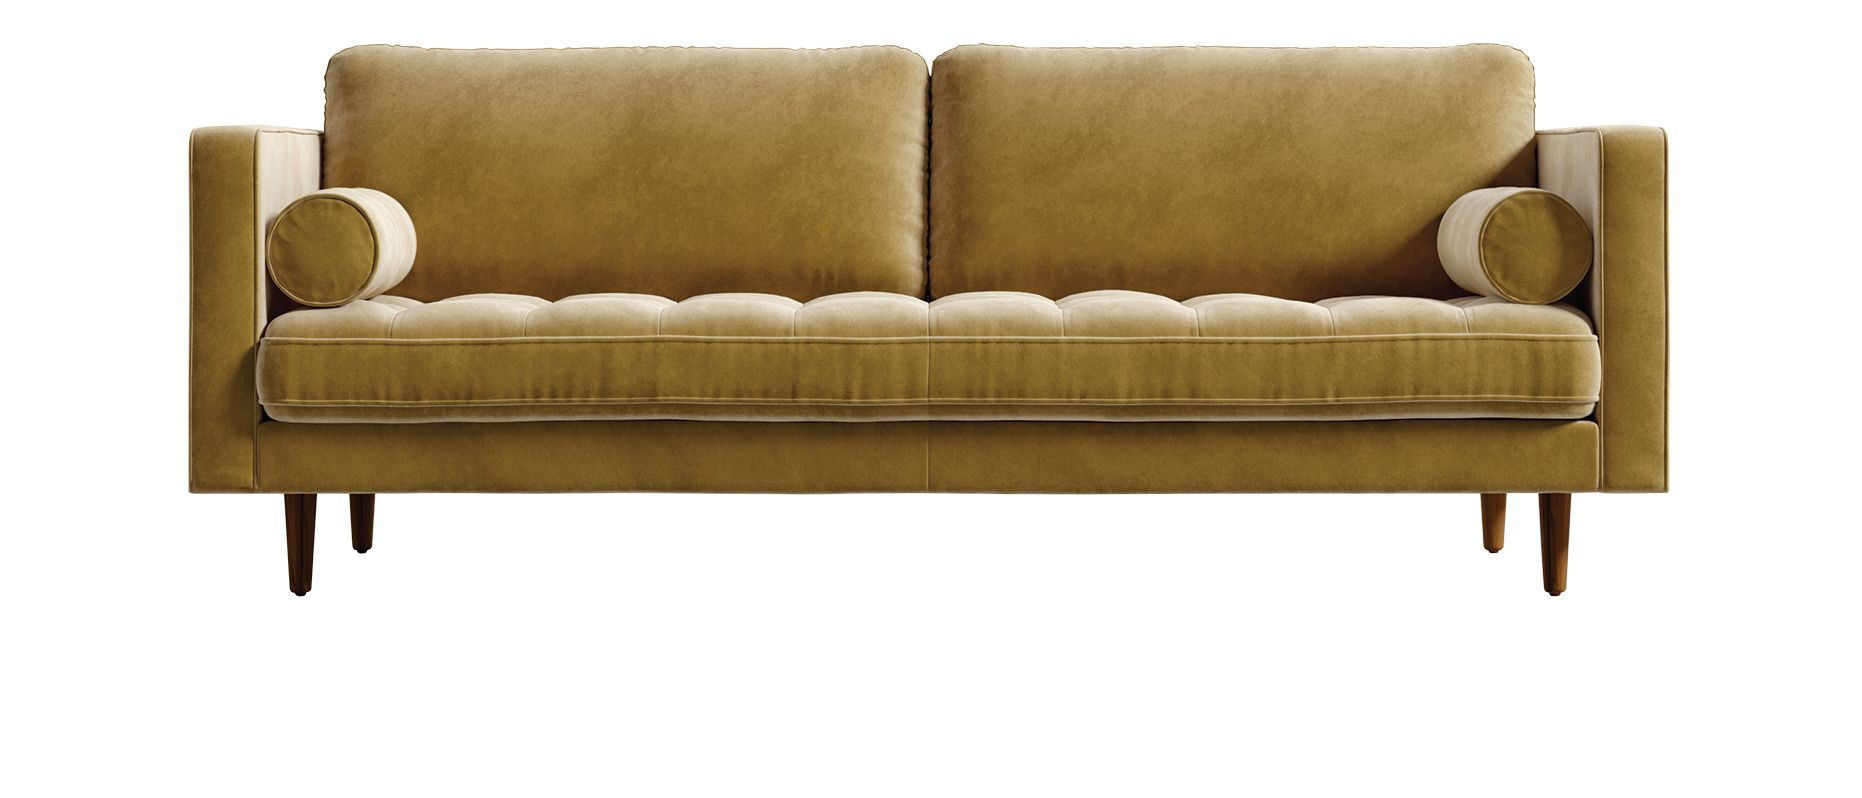 LEFT Luca sofa in Golden Beryl velvet by Rove Concepts